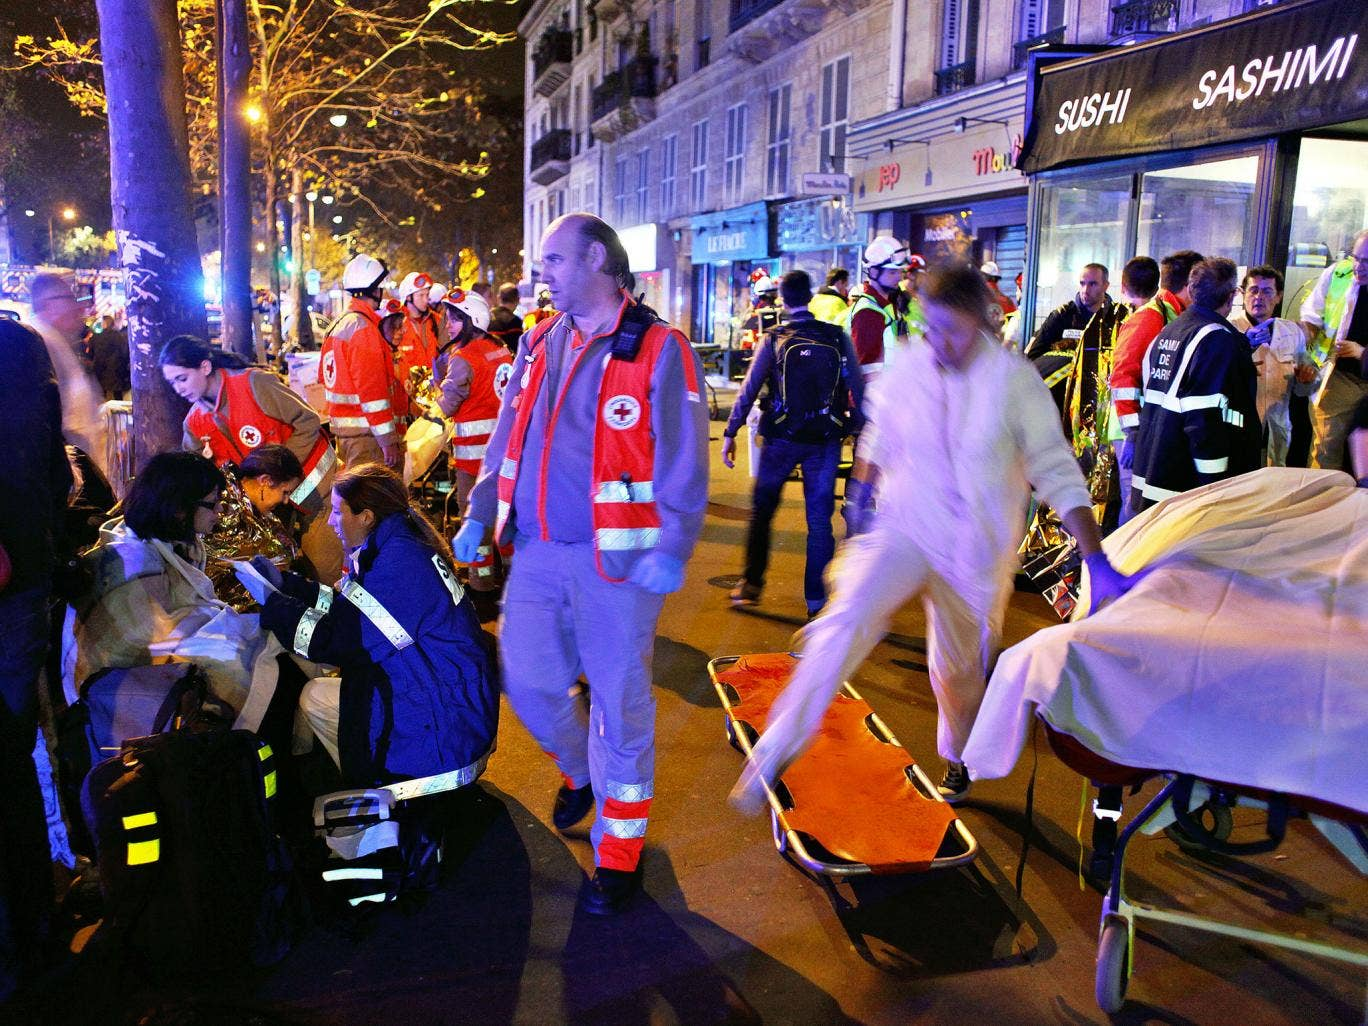 Apocalyptic press coverage and predictions of further attacks in Paris play into the hands of Isis